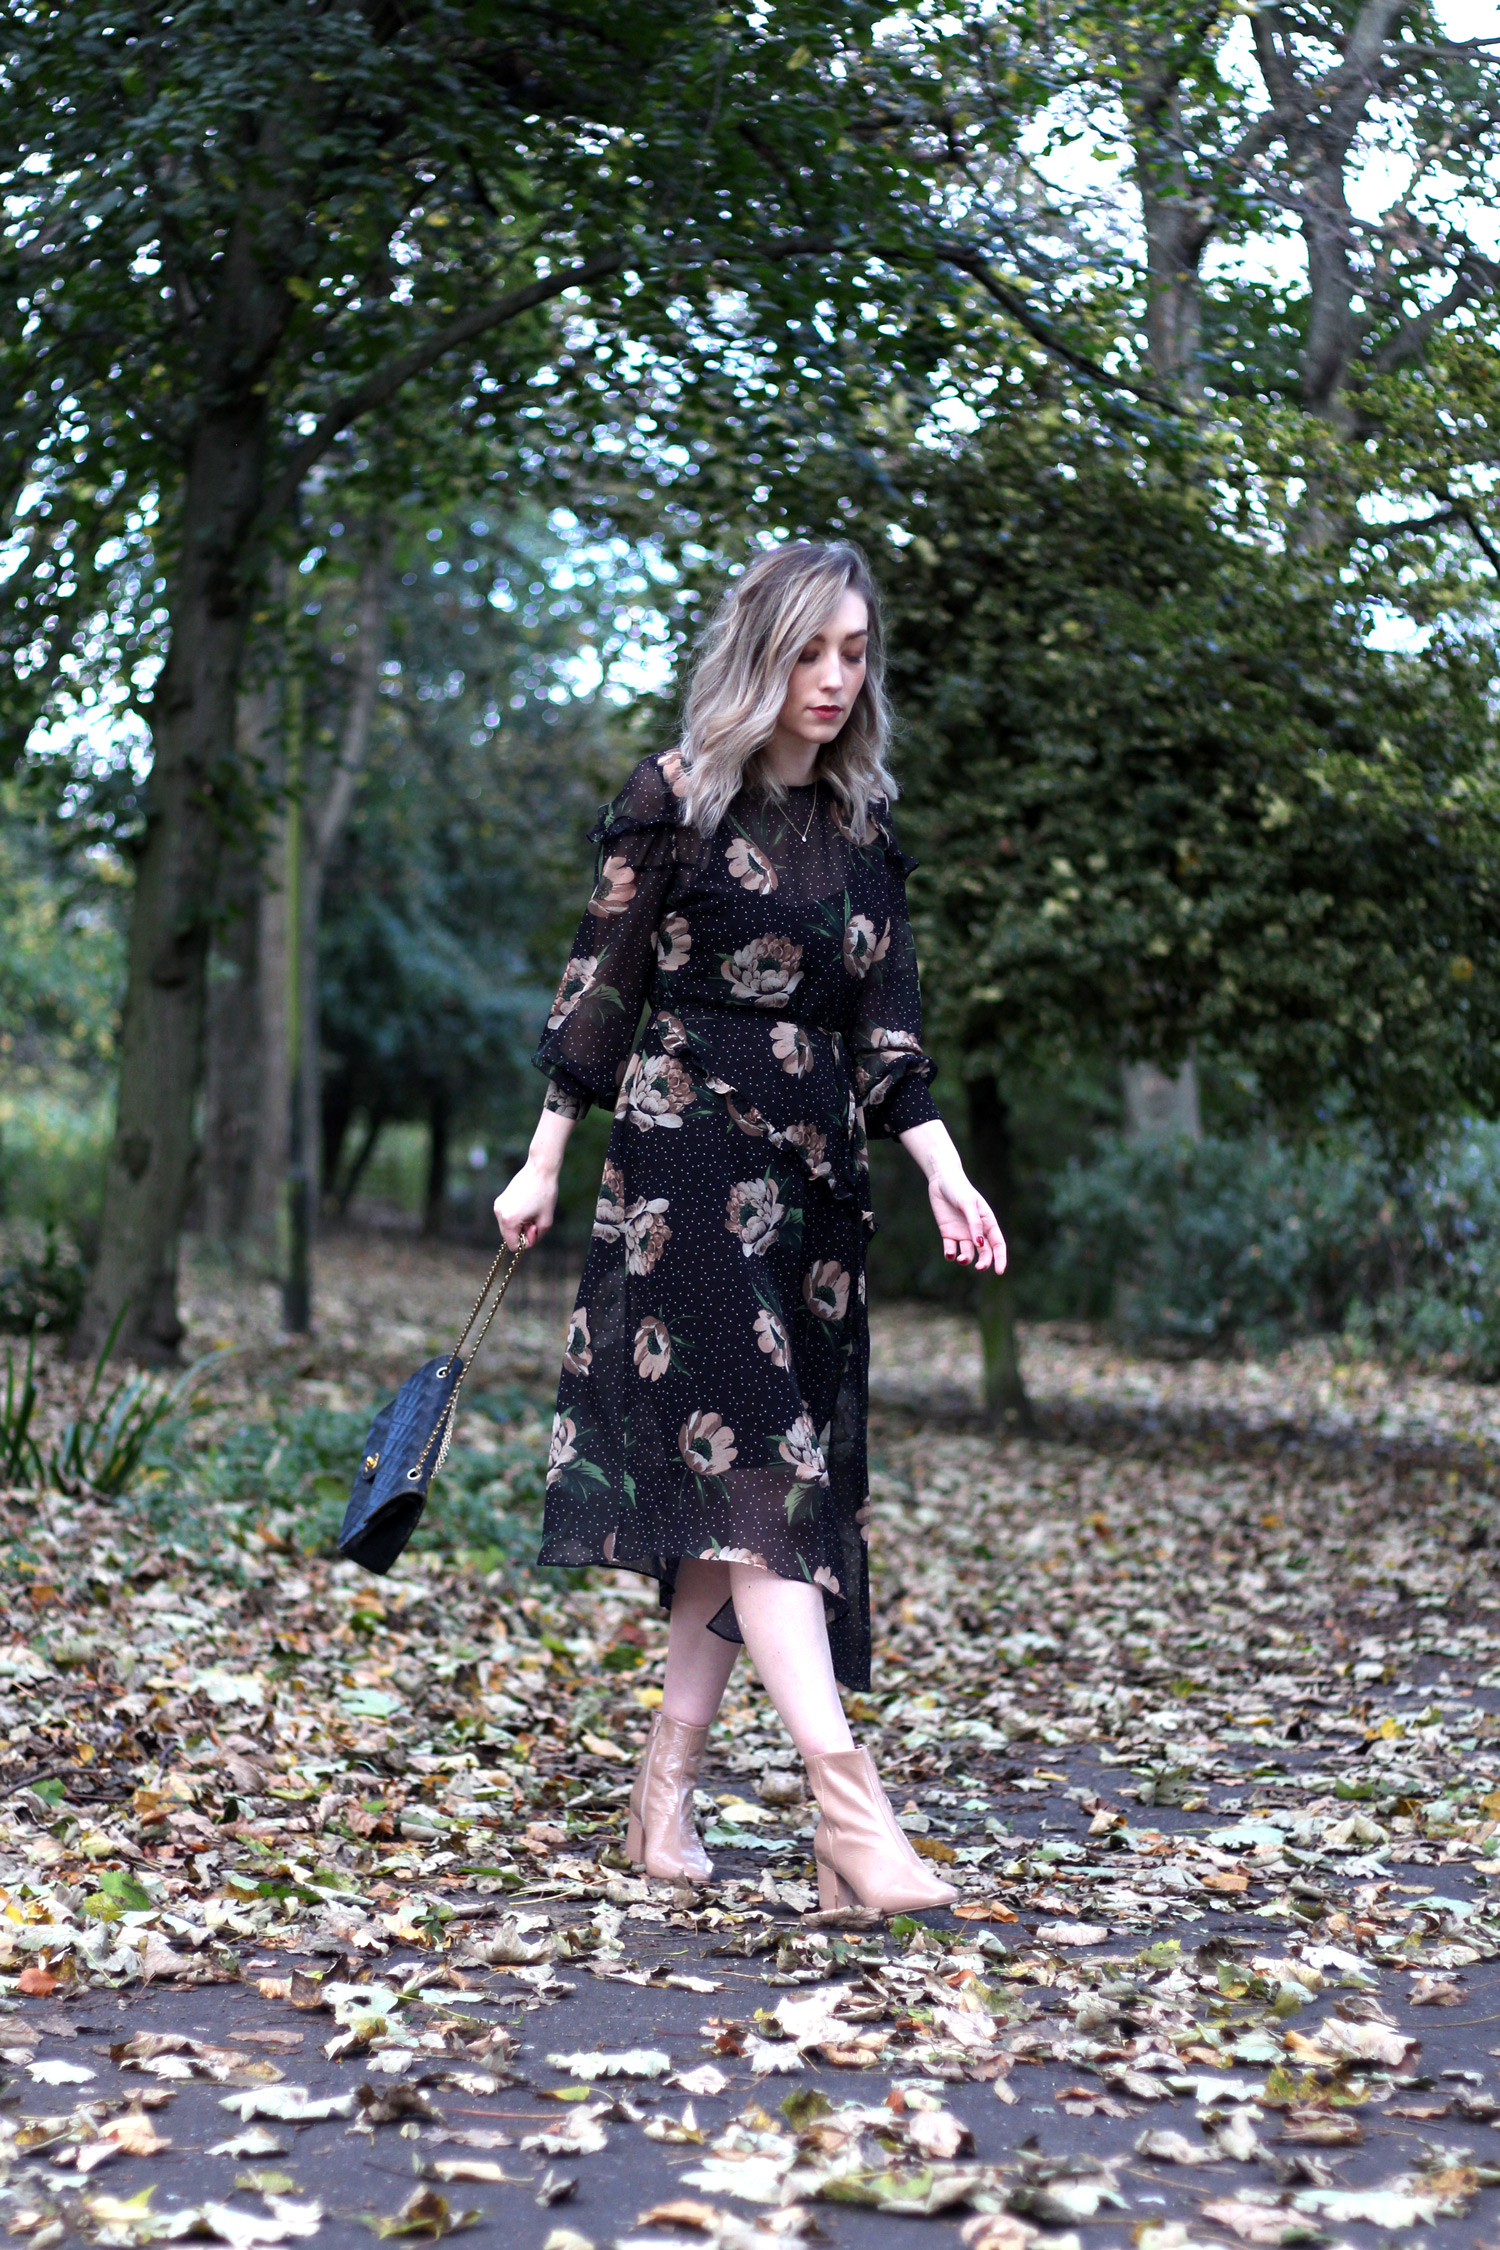 next-floral-midi-dress-nude-leather-boots-vintage-chanel-autumn-outfit-5